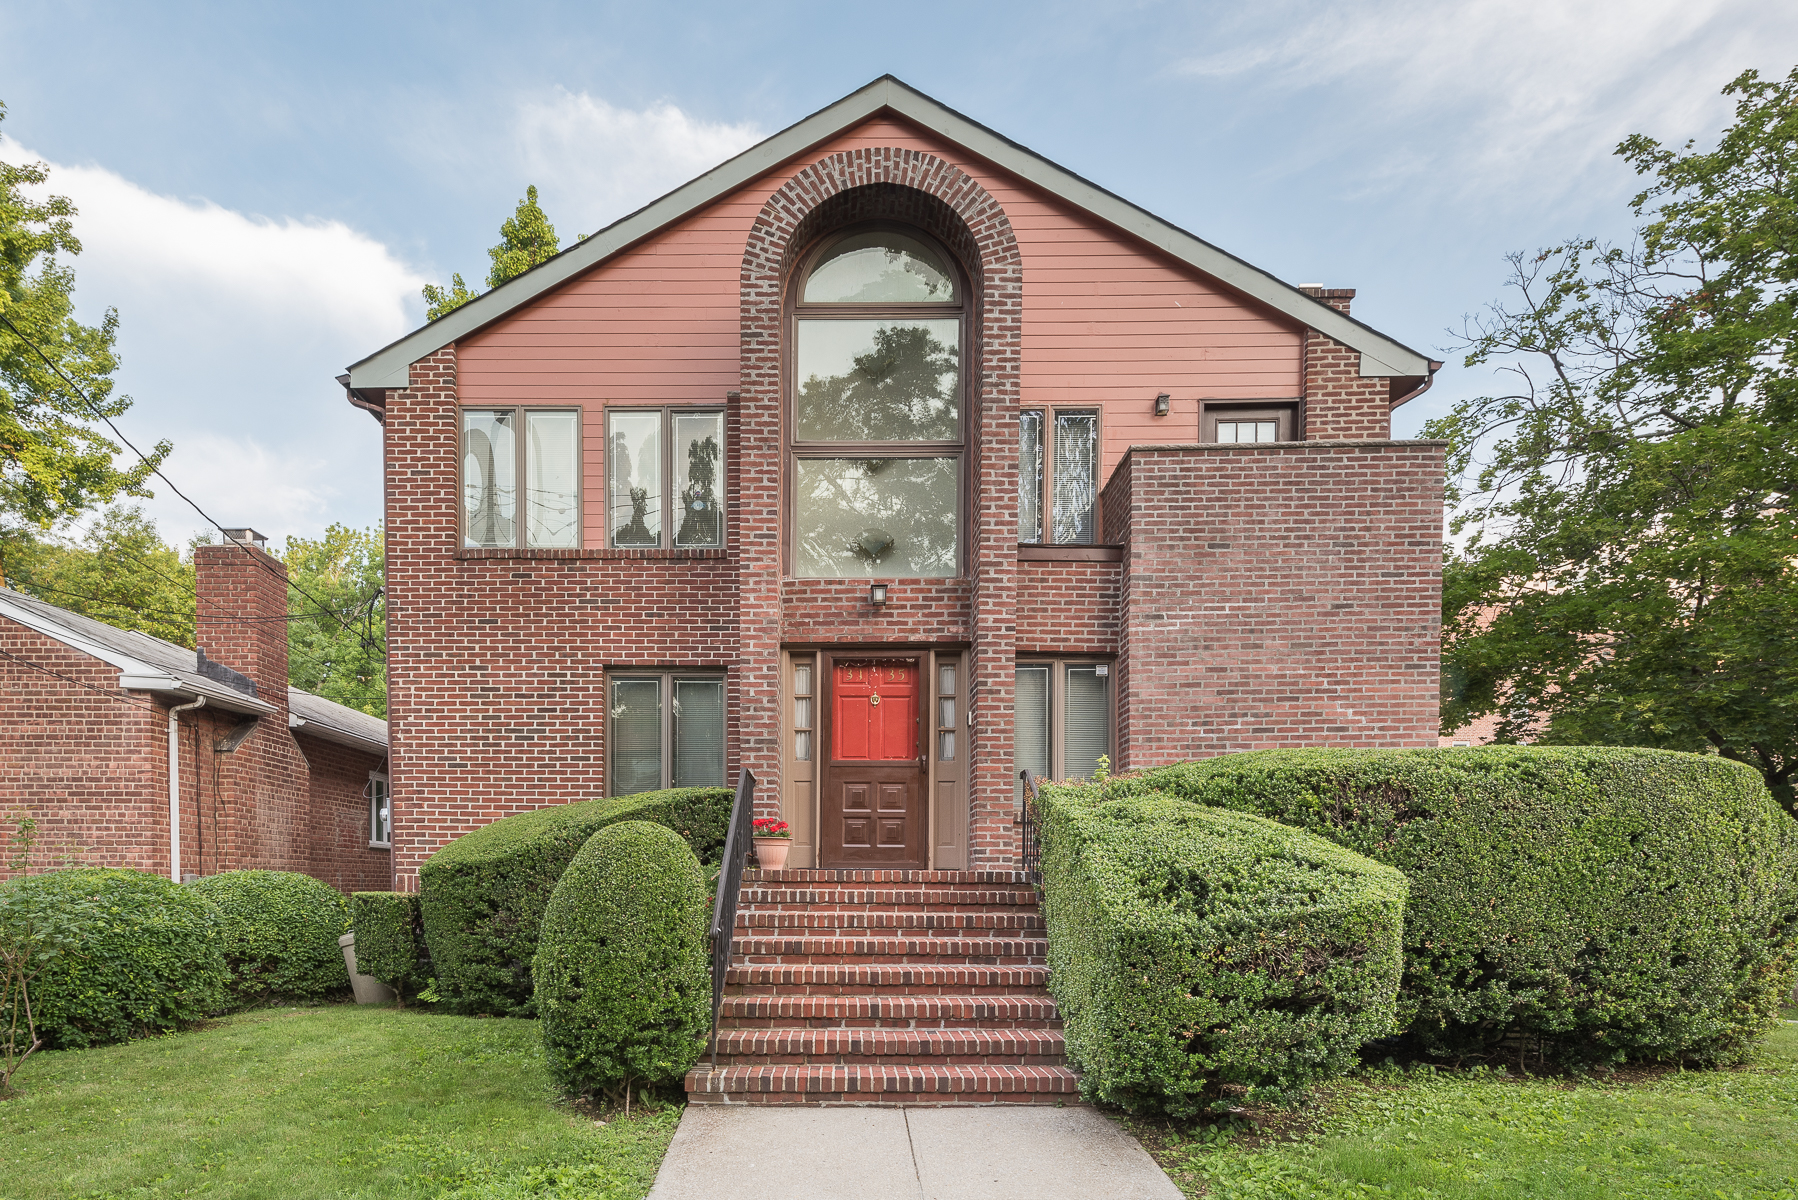 Casa Unifamiliar por un Venta en Detached Corner Brick House 3135 Arlington Avenue Riverdale, Nueva York, 10463 Estados Unidos